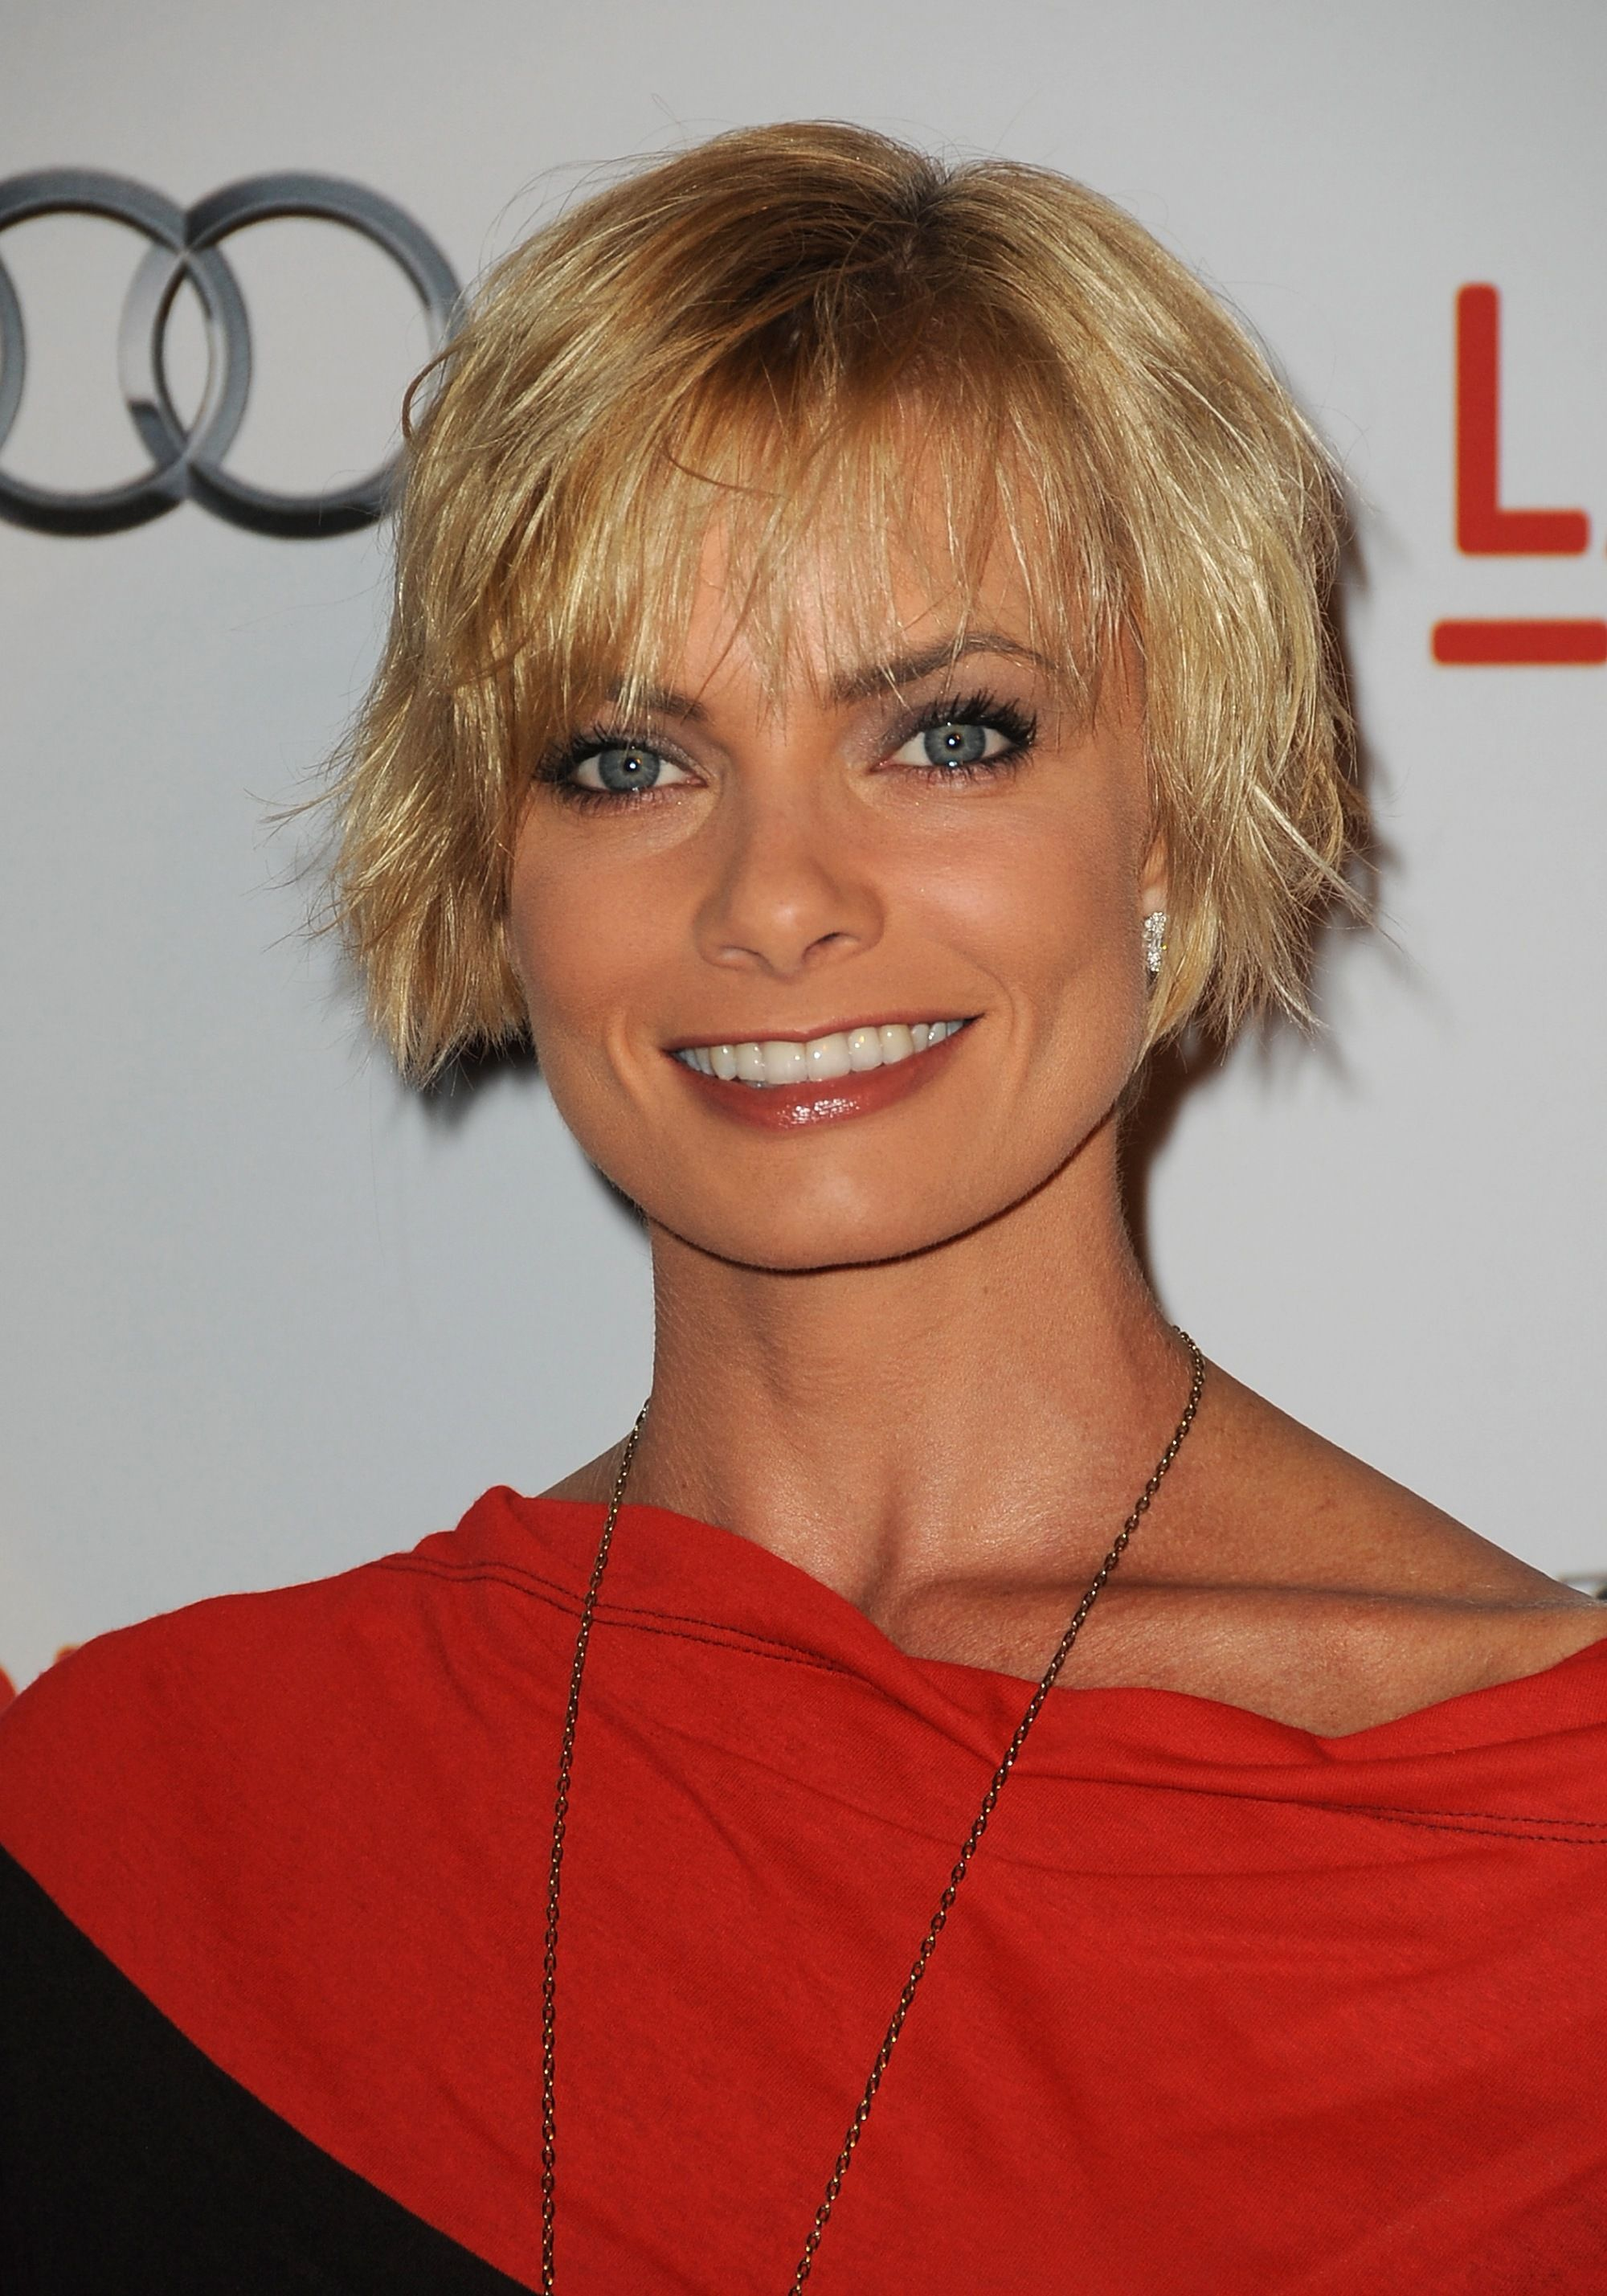 jaime pressly margot robbiejaime pressly margot robbie, jaime pressly net worth, jaime pressly mika, jaime pressly imdb, jaime pressly twitter, jaime pressly filme, jaime pressly i love you man, jaime pressly fan, jaime pressly instagram, jaime pressly vs margot robbie, jaime pressly aerosmith, jaime pressly, jaime pressly wiki, jaime pressly movies, jaime pressly 2015